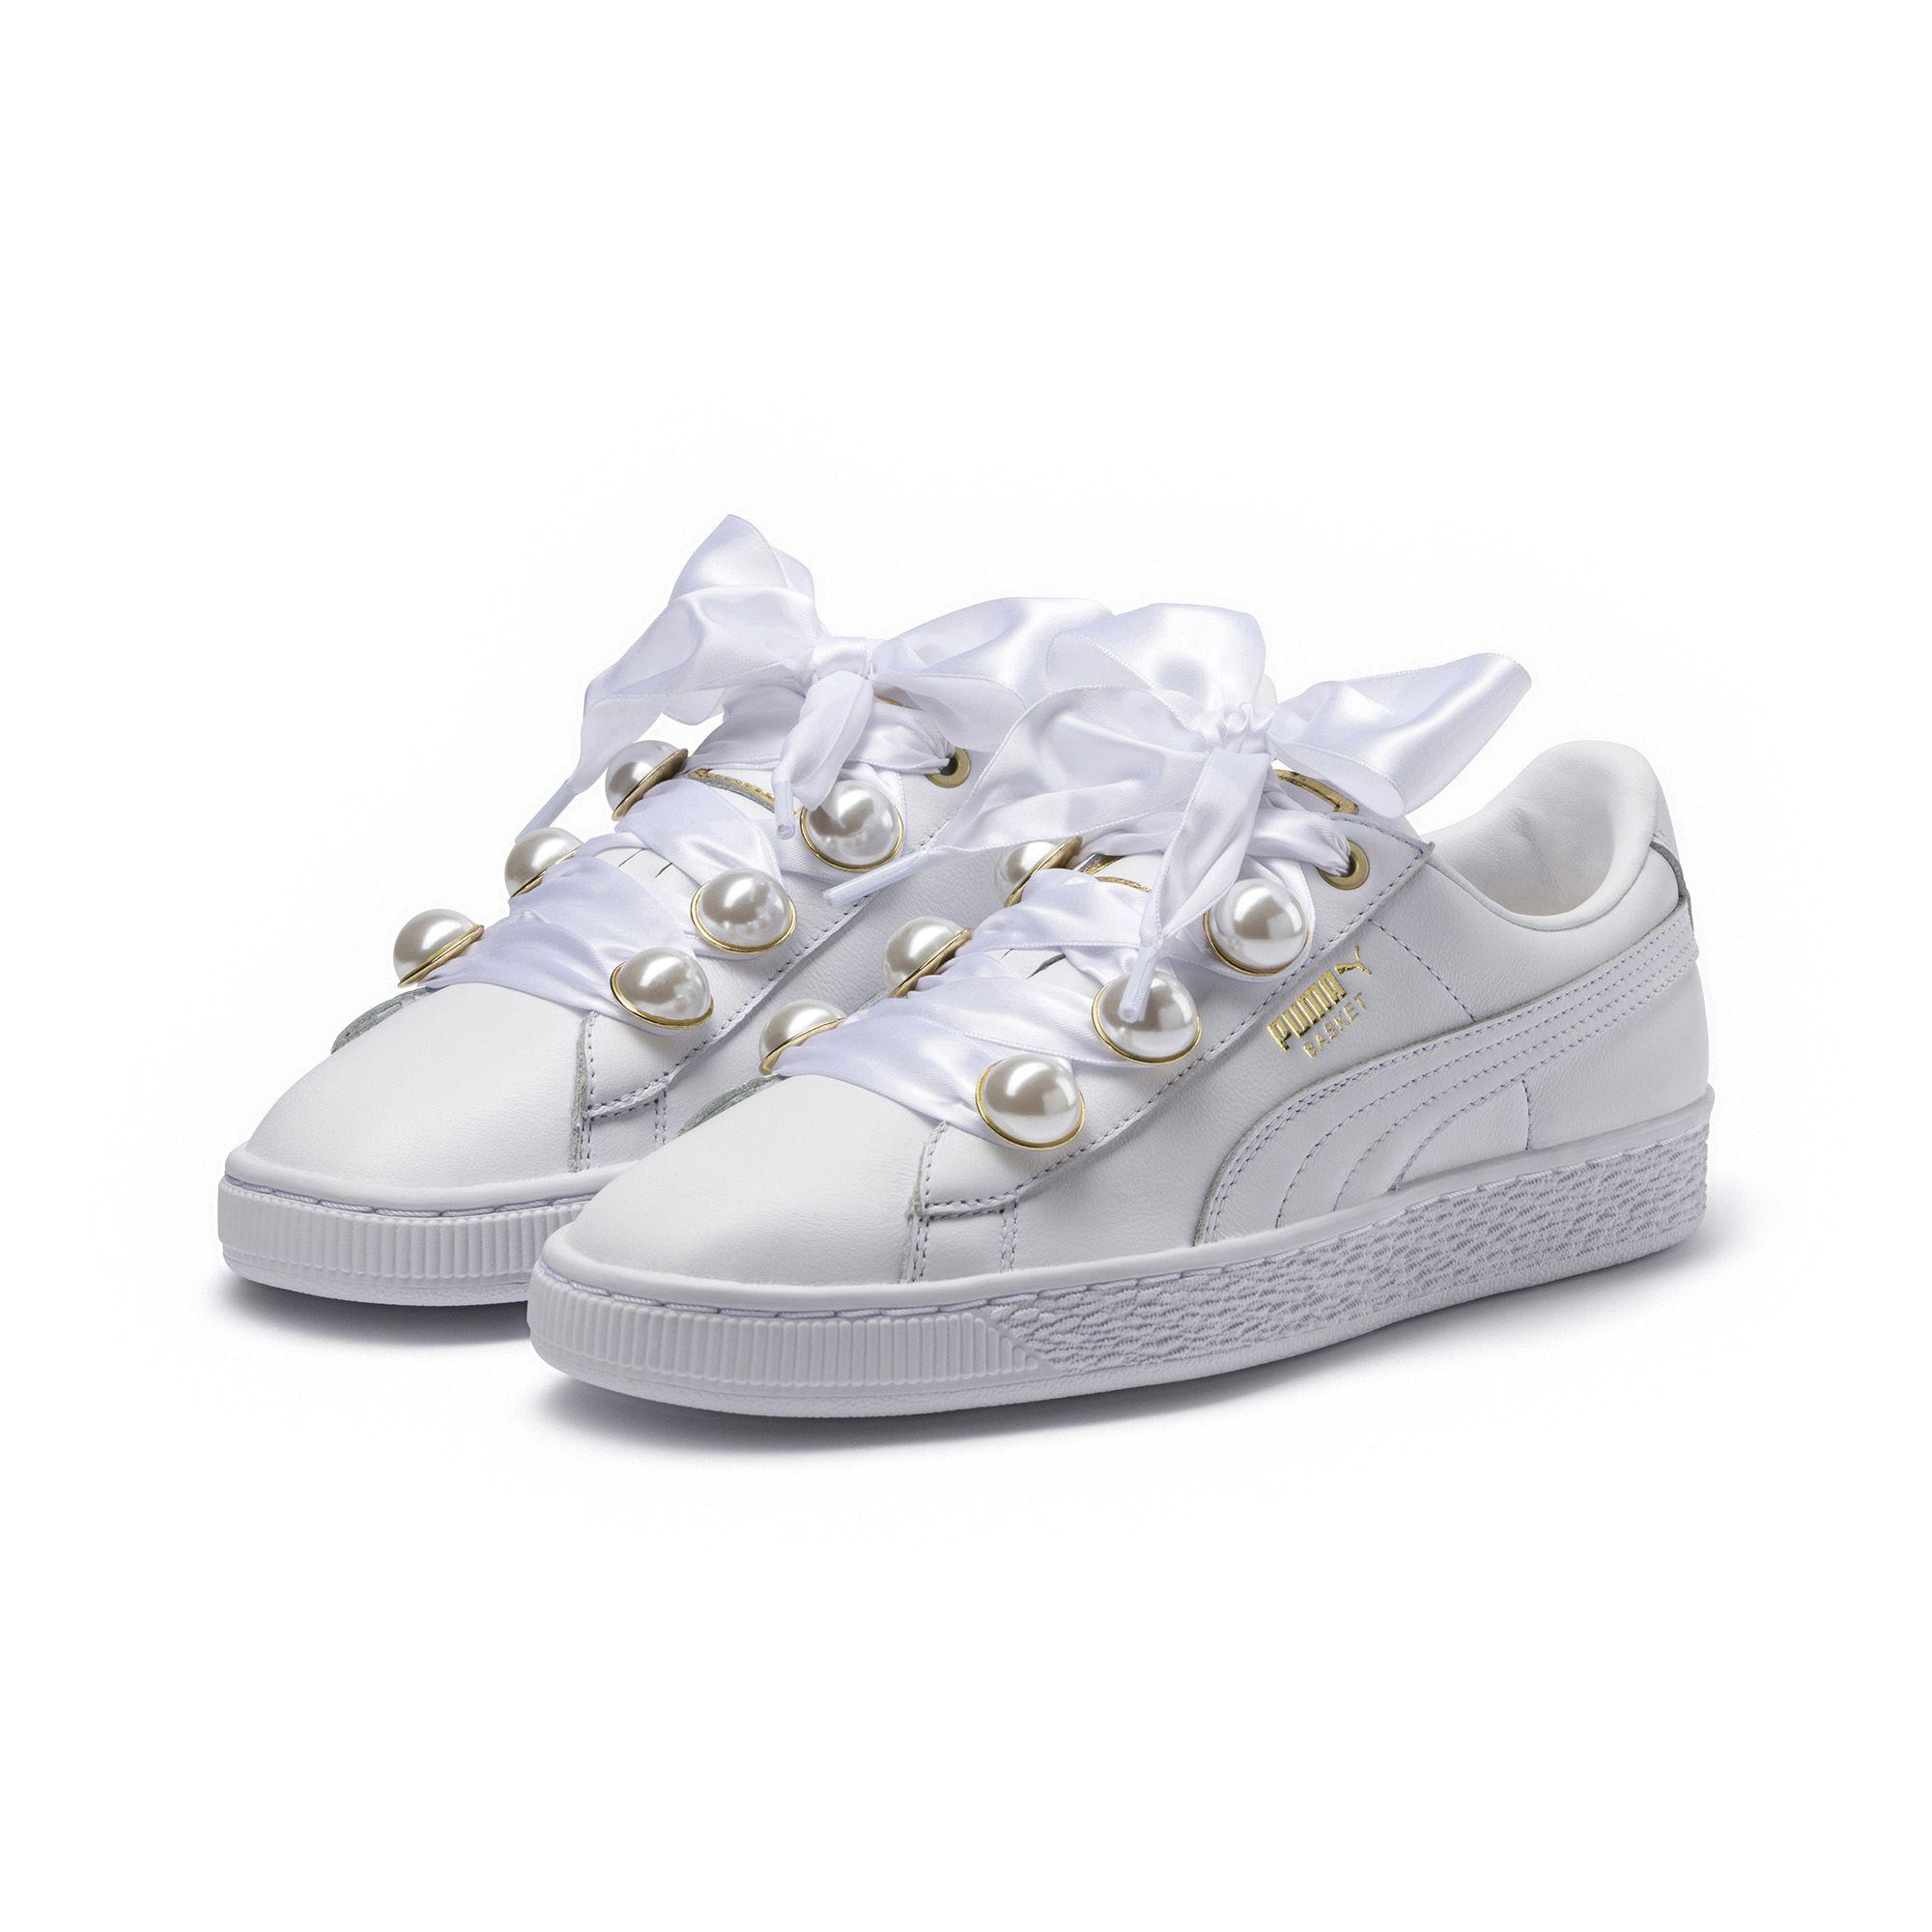 newest style complete range of articles select for clearance Basket Bling 's Sneakers